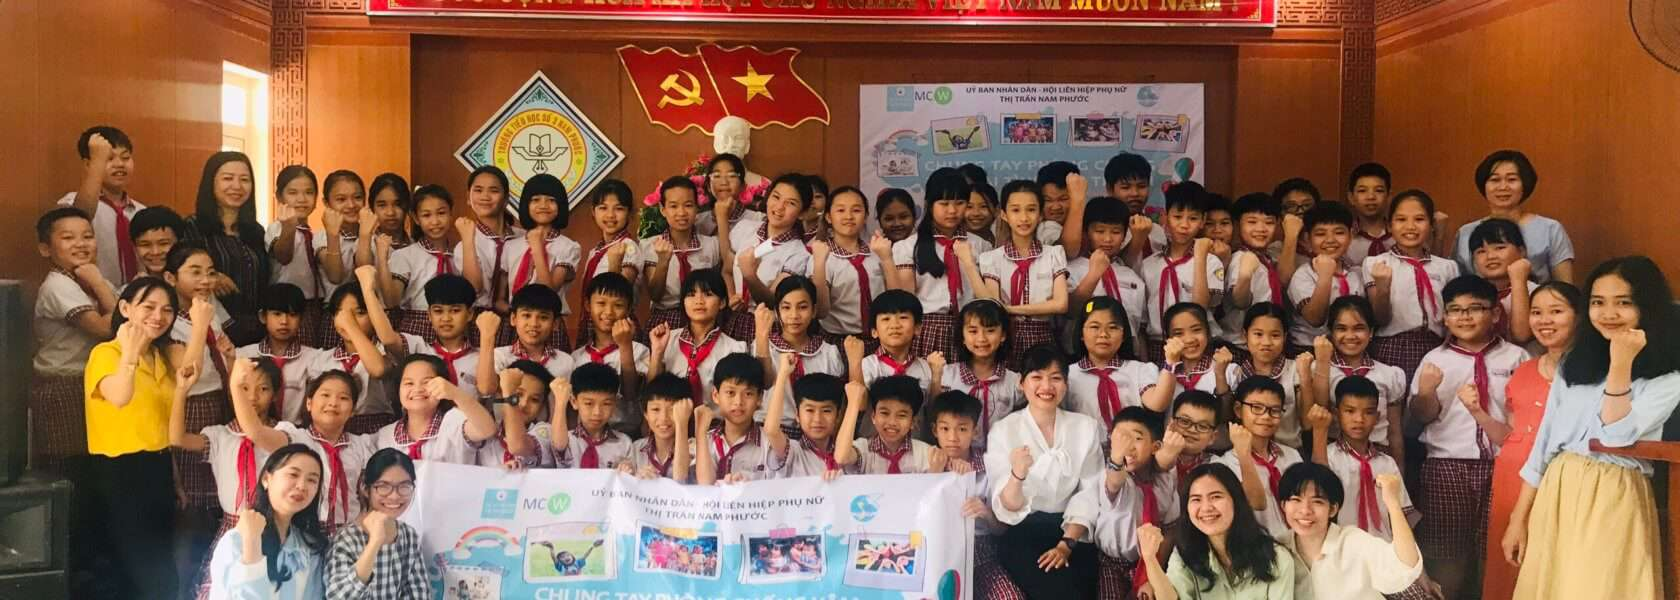 Preventing Child Sexual Abuse in Vietnam The Story of My Duong